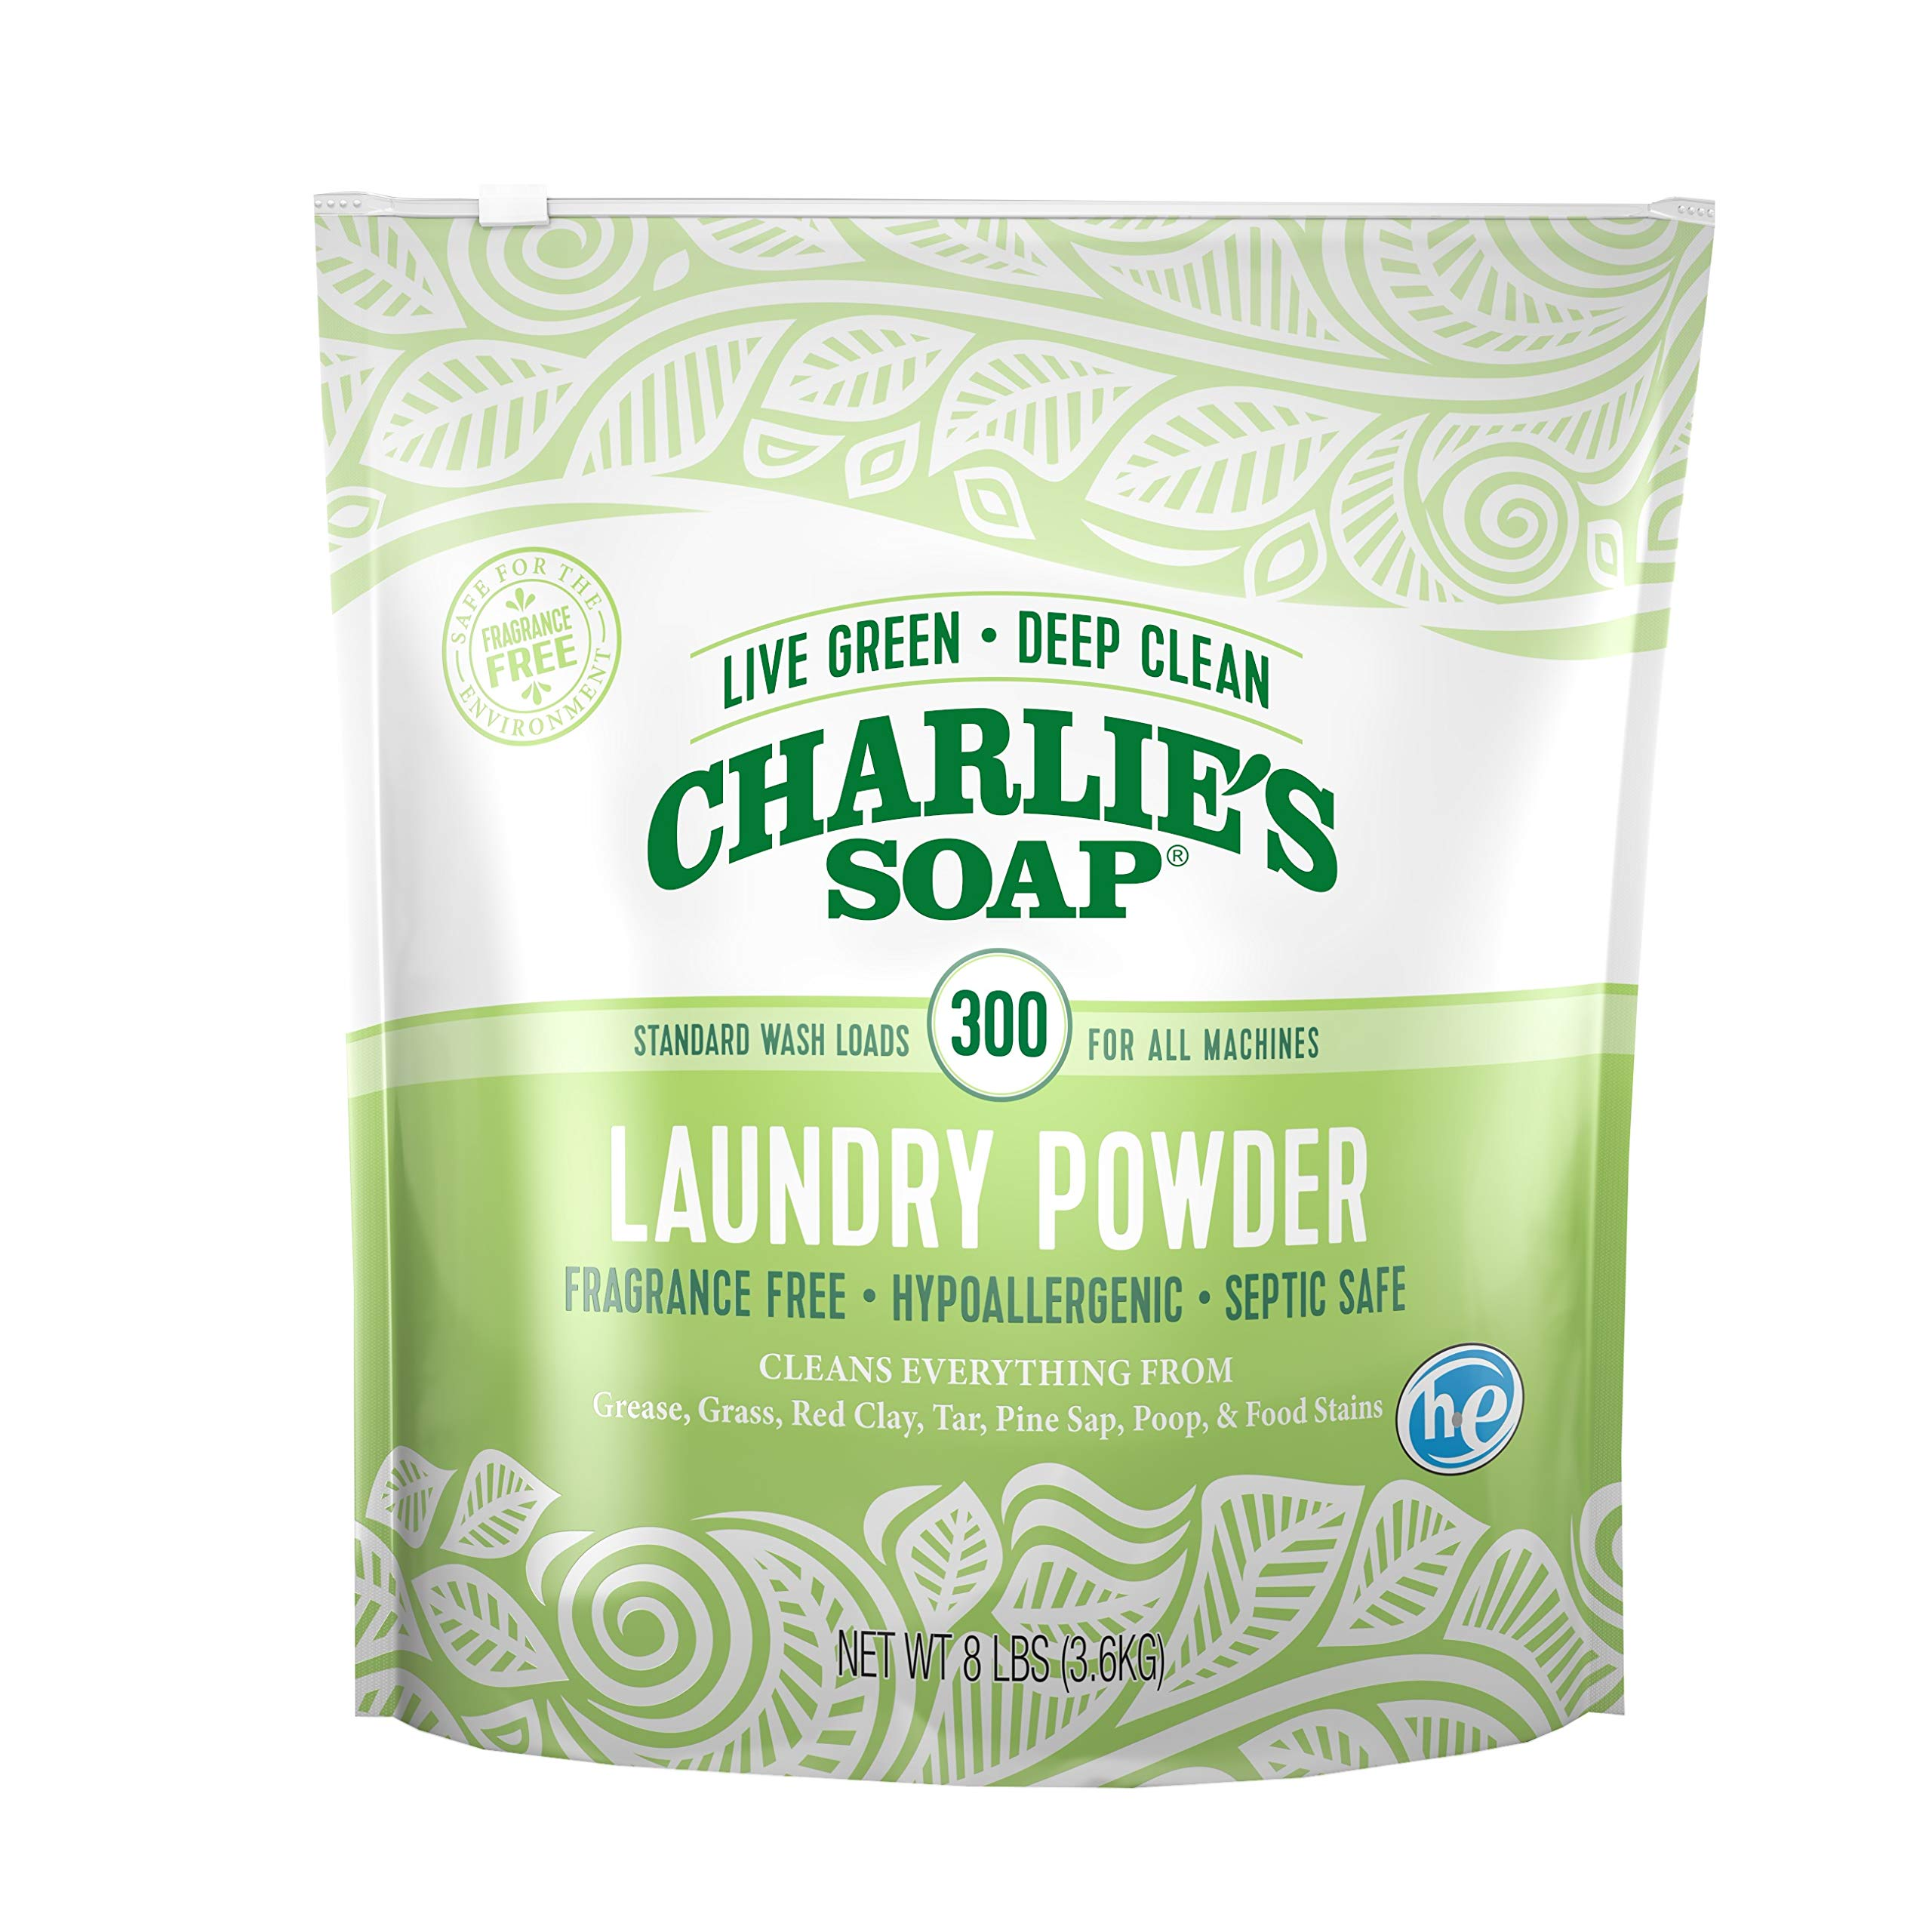 Charlie's Soap - Fragrance Free Powder Laundry Detergent - 300 Loads (8 lbs, 1 Pack) by Charlie's Soap